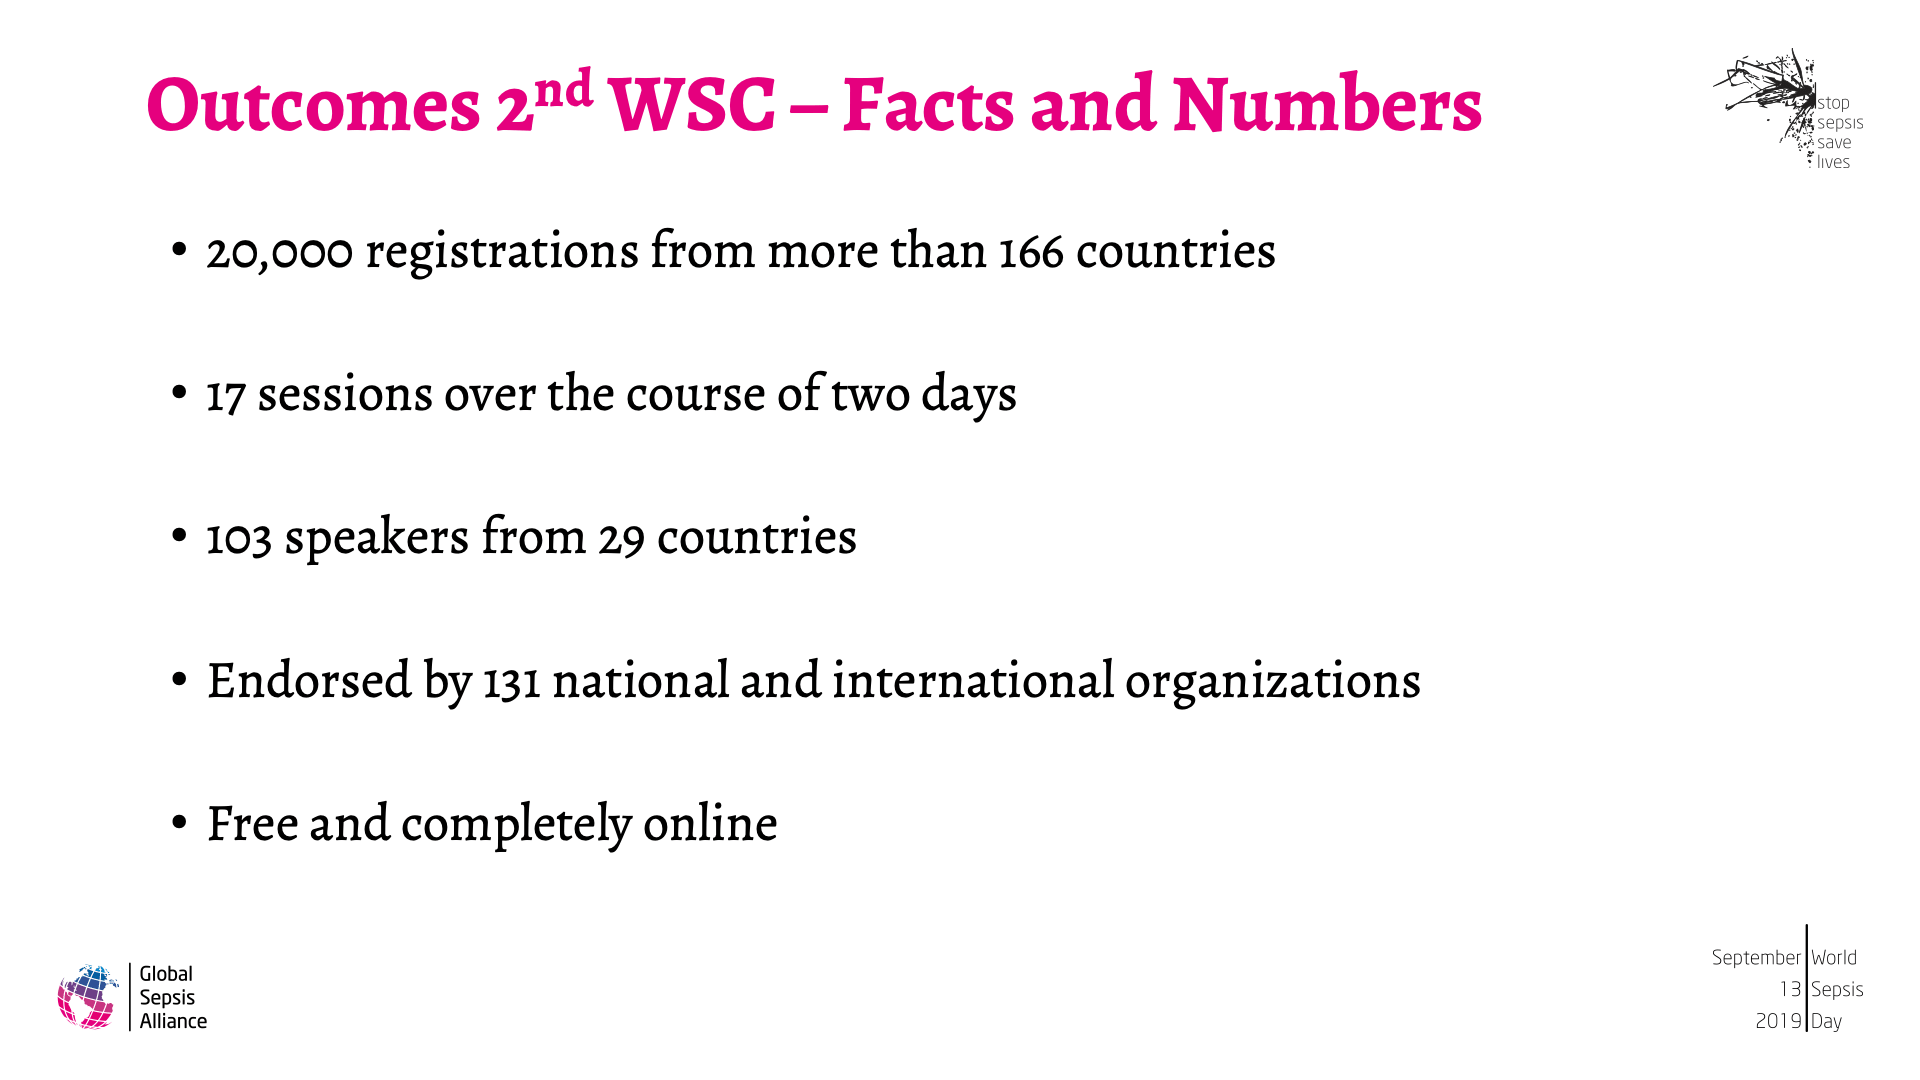 Outcomes 2nd WSC and WSD 2018 2.png